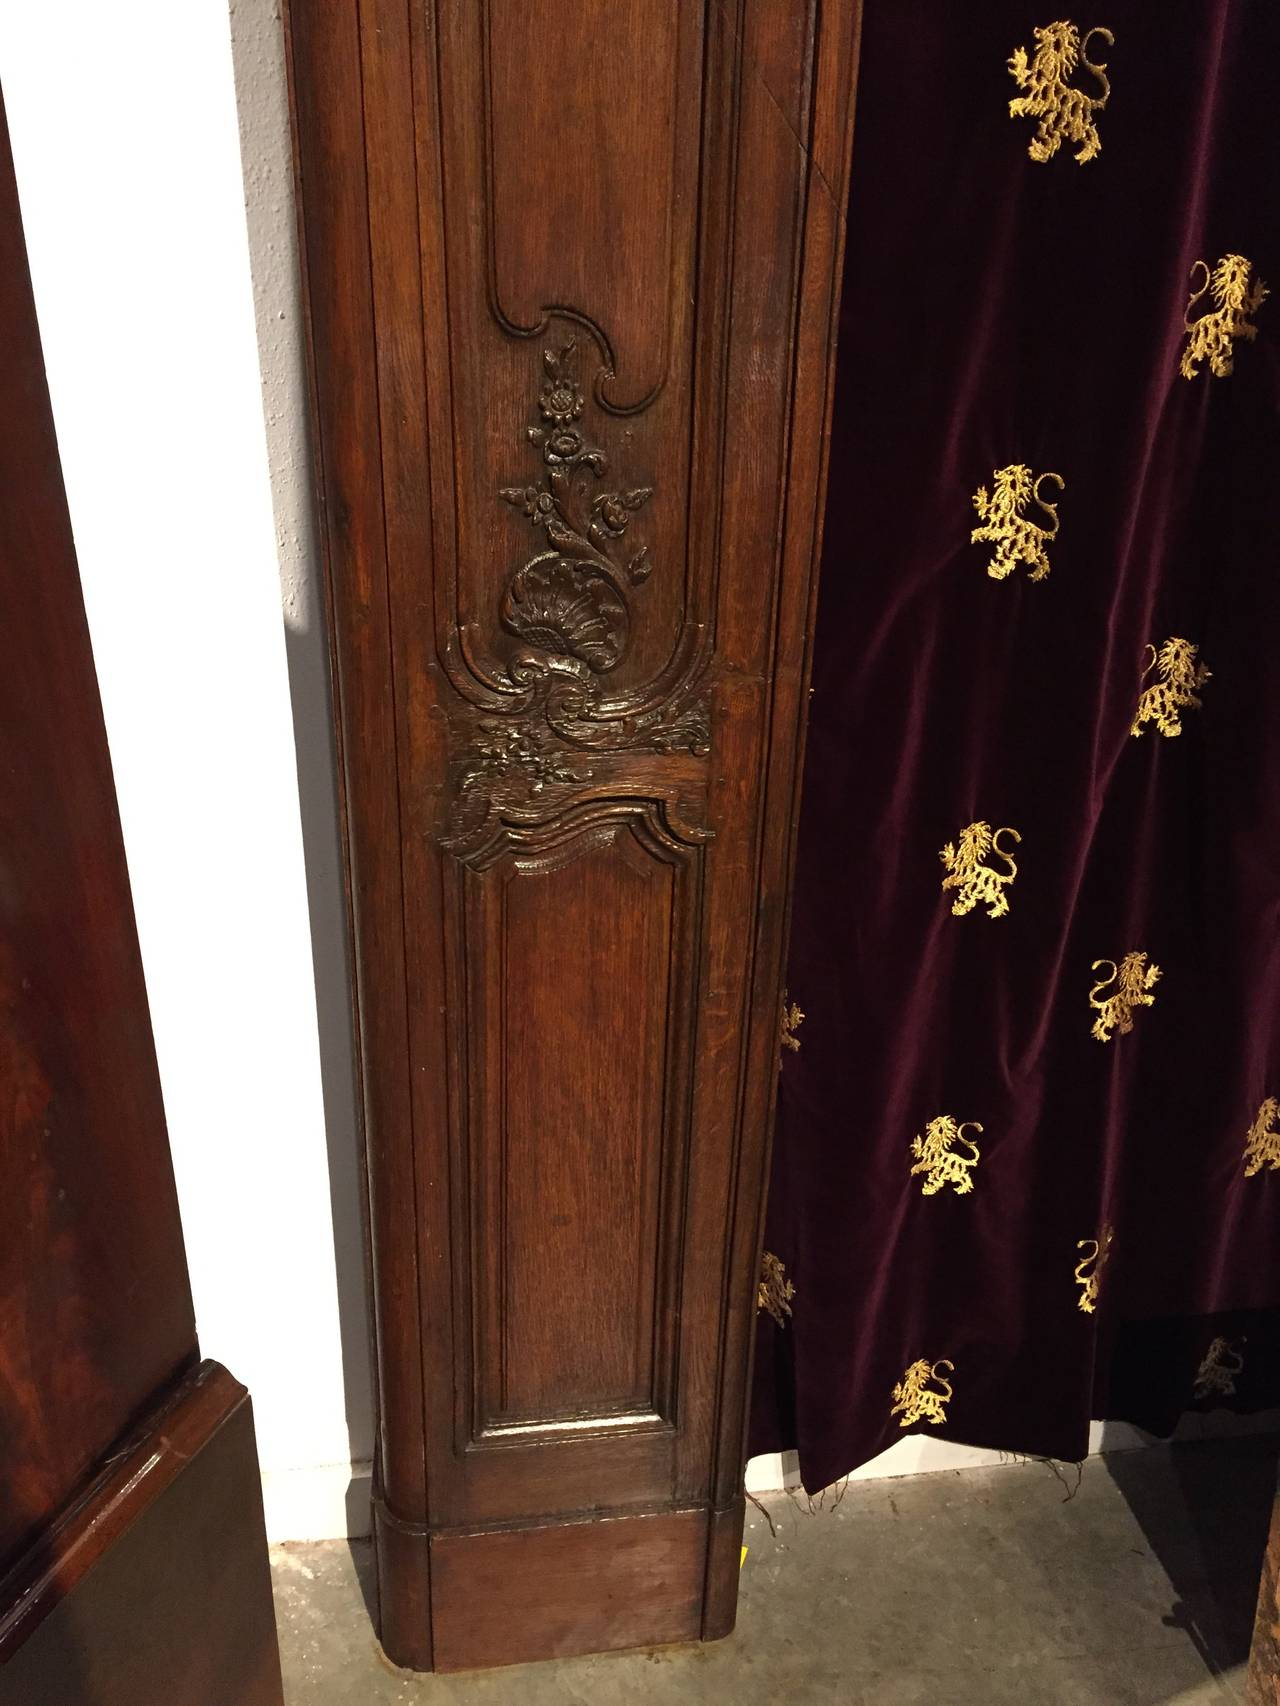 Antique French Boiserie Door Surround from the 1700s In Good Condition For Sale In Dallas, TX